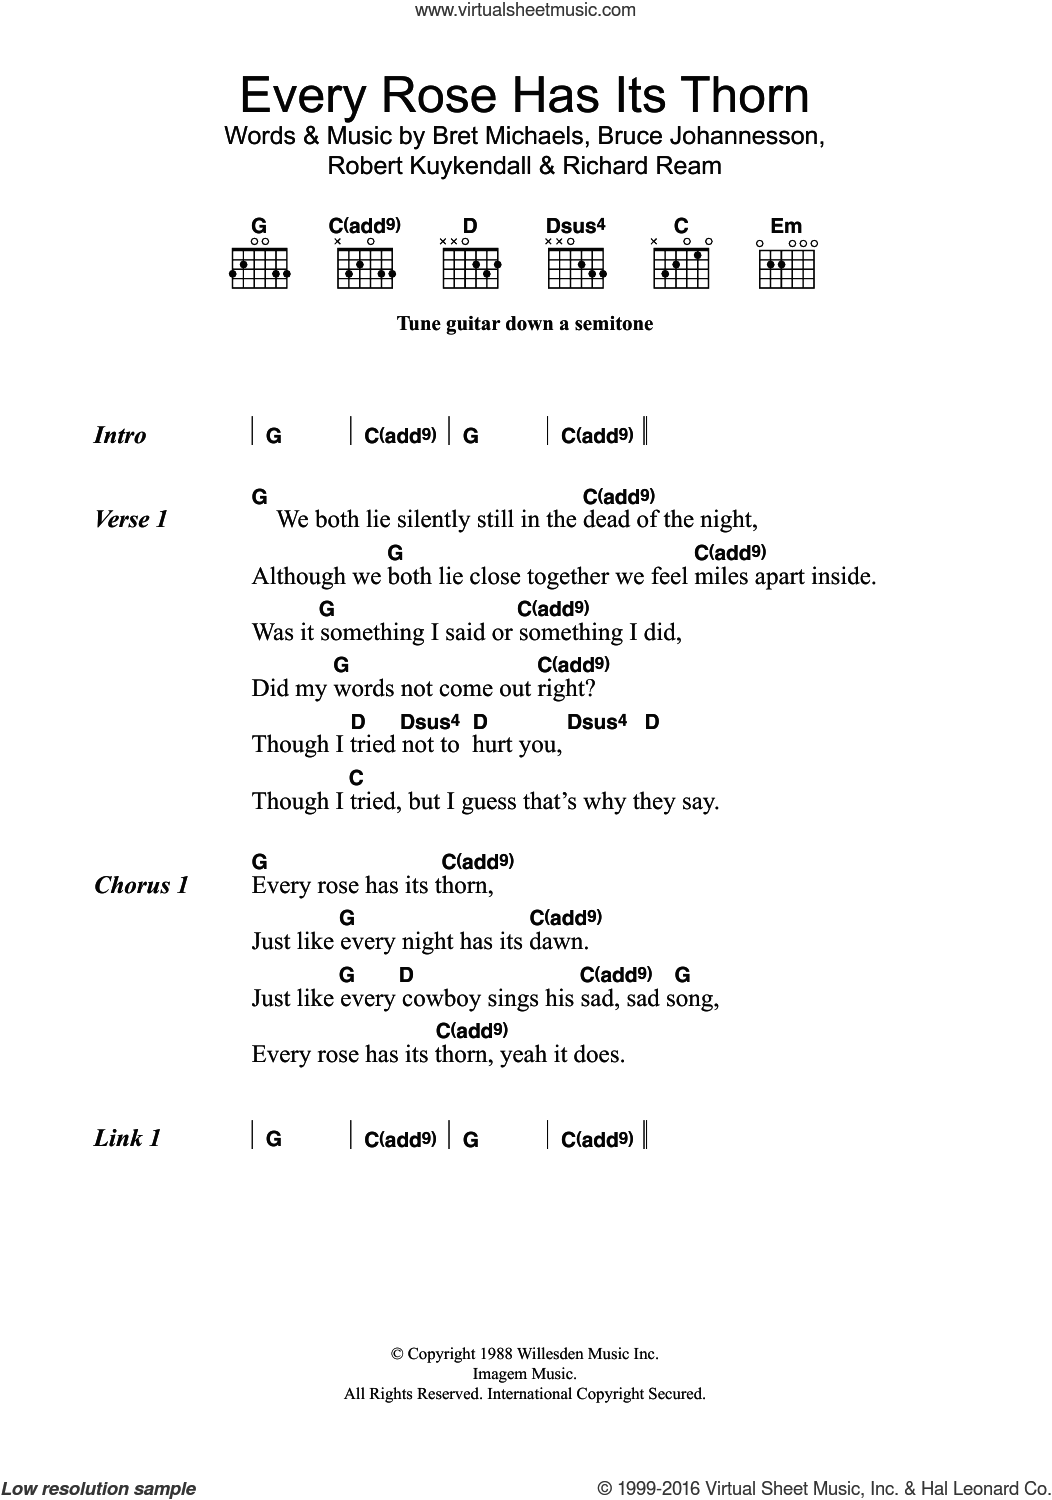 Every Rose Has Its Thorn sheet music for guitar (chords) by Poison, Bret Michaels, Bruce Anthony Johannesson, Richard Ream and Robert Kuykendall, intermediate